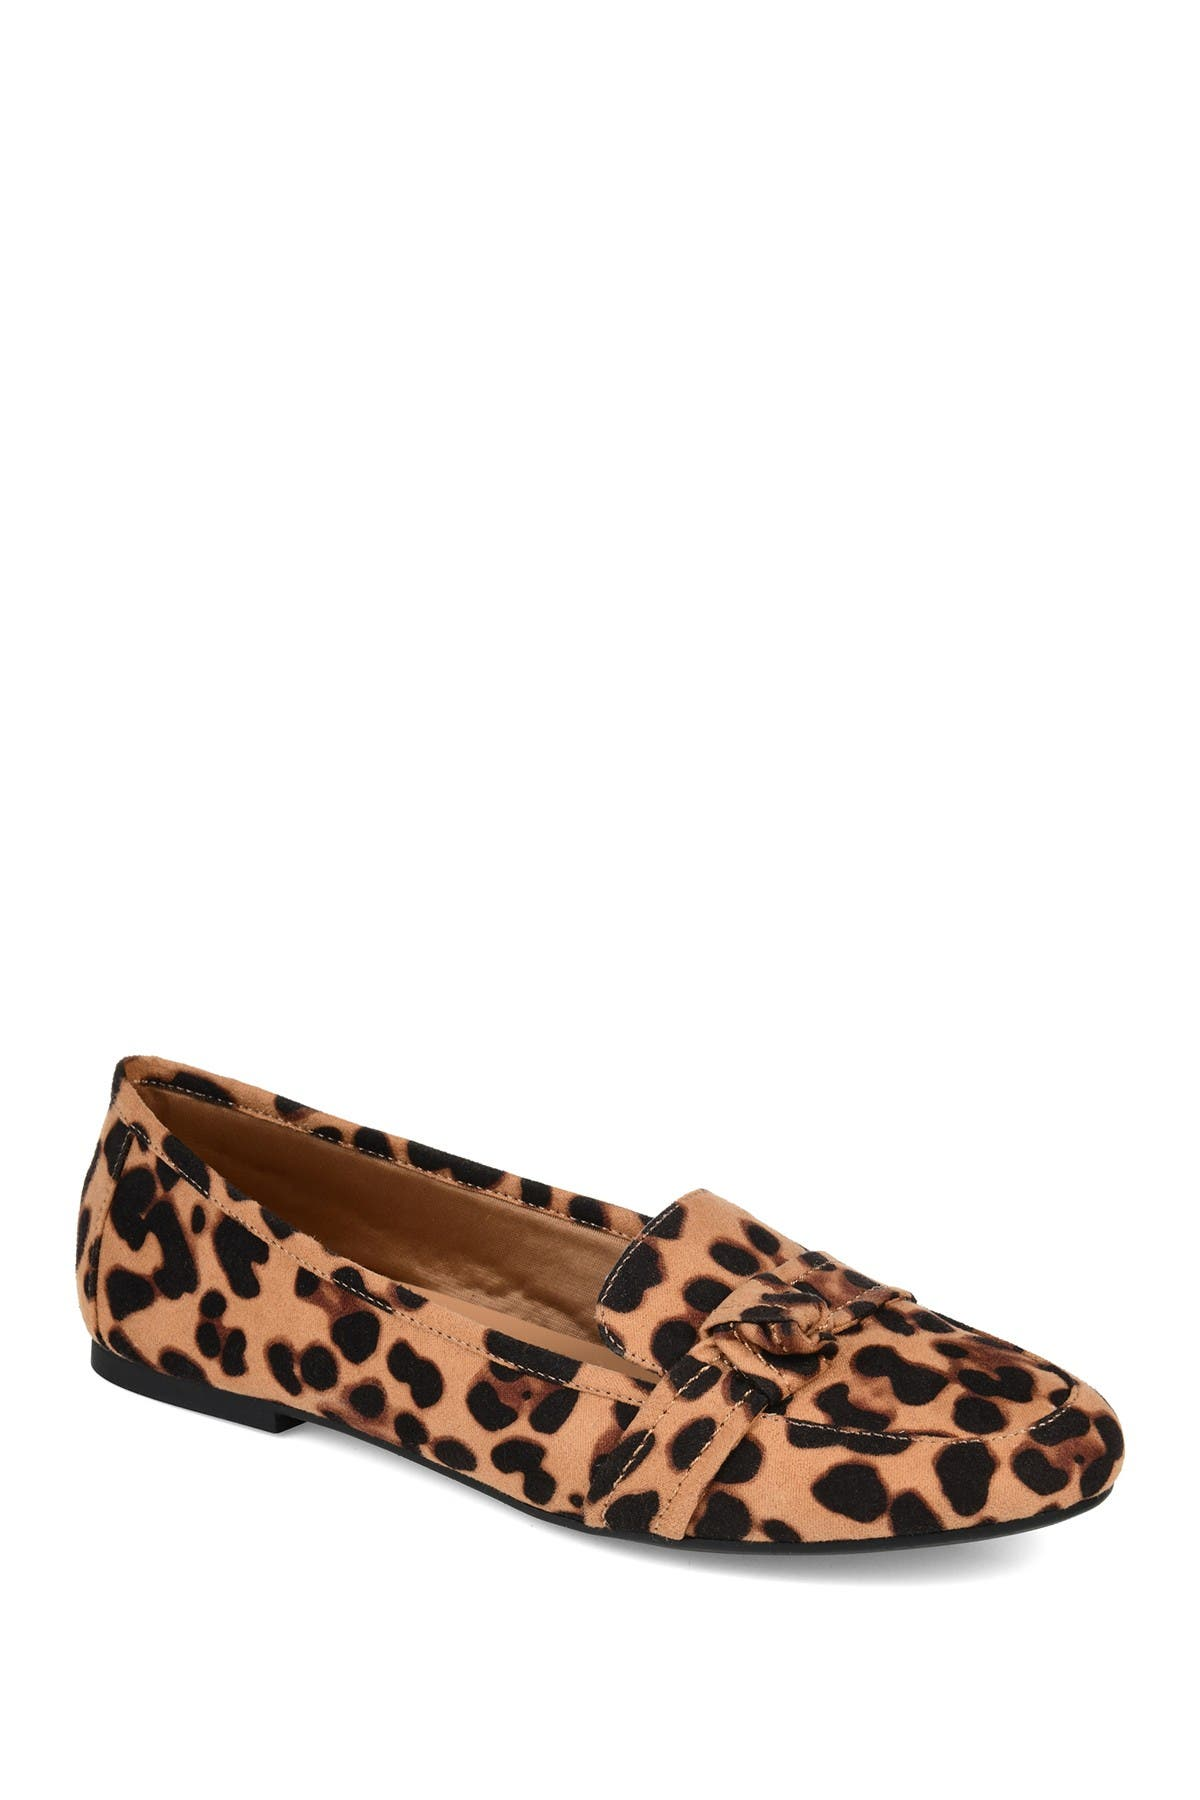 Image of JOURNEE Collection Marci Knotted Strap Loafer